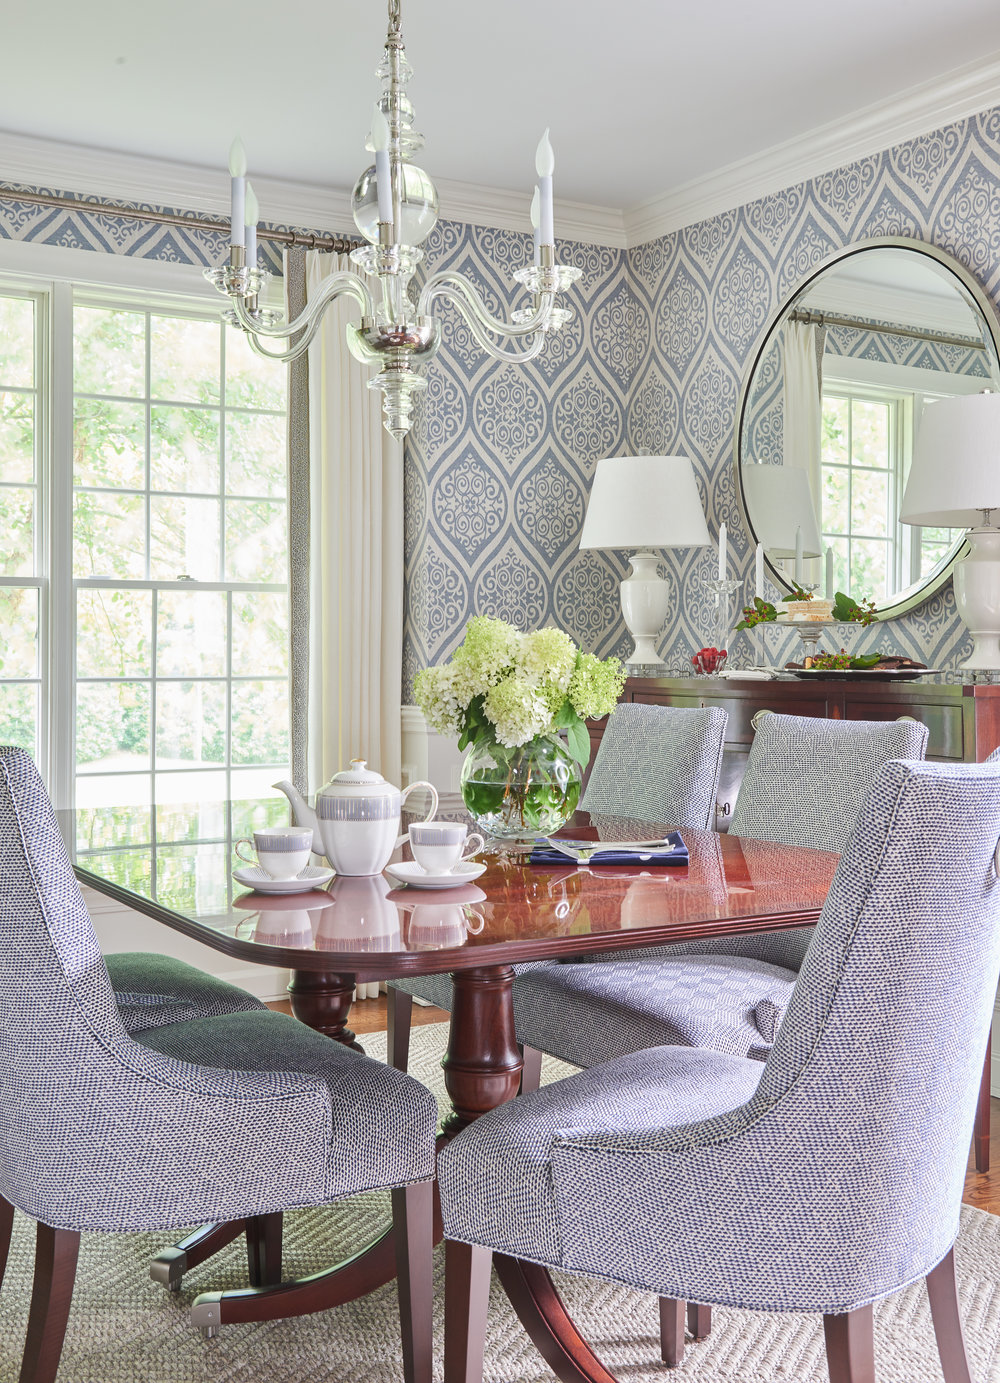 Lighting and Mirrors in Dining Room